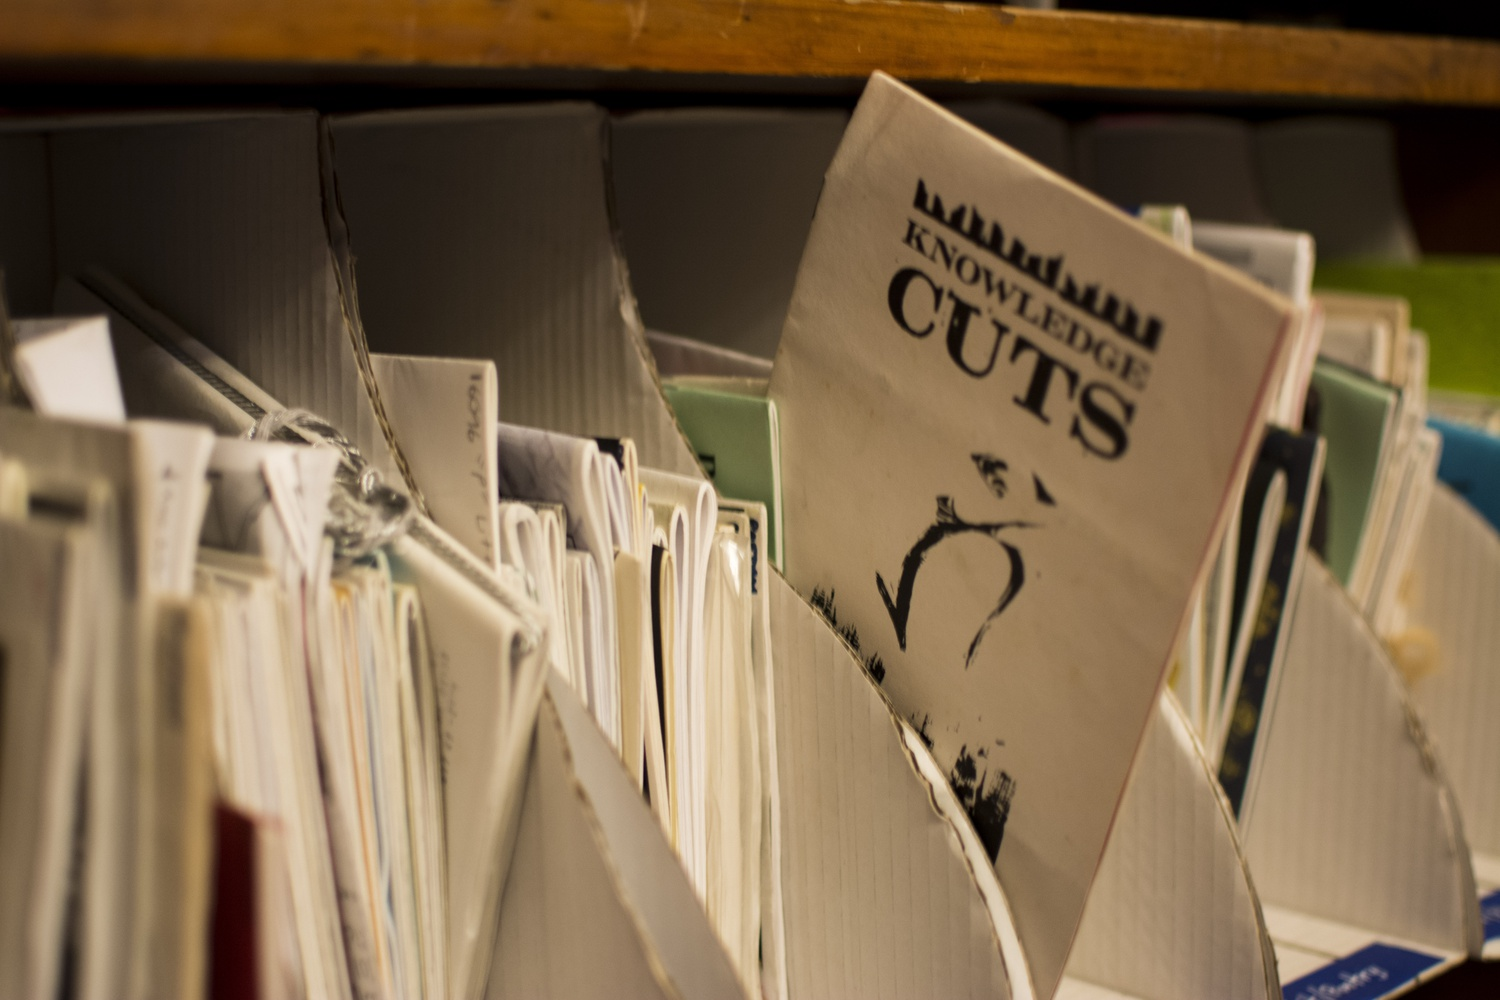 The zines cover a wide variety of topics, from politics to cooking and bikes. They are grouped in binders for easier consultation.